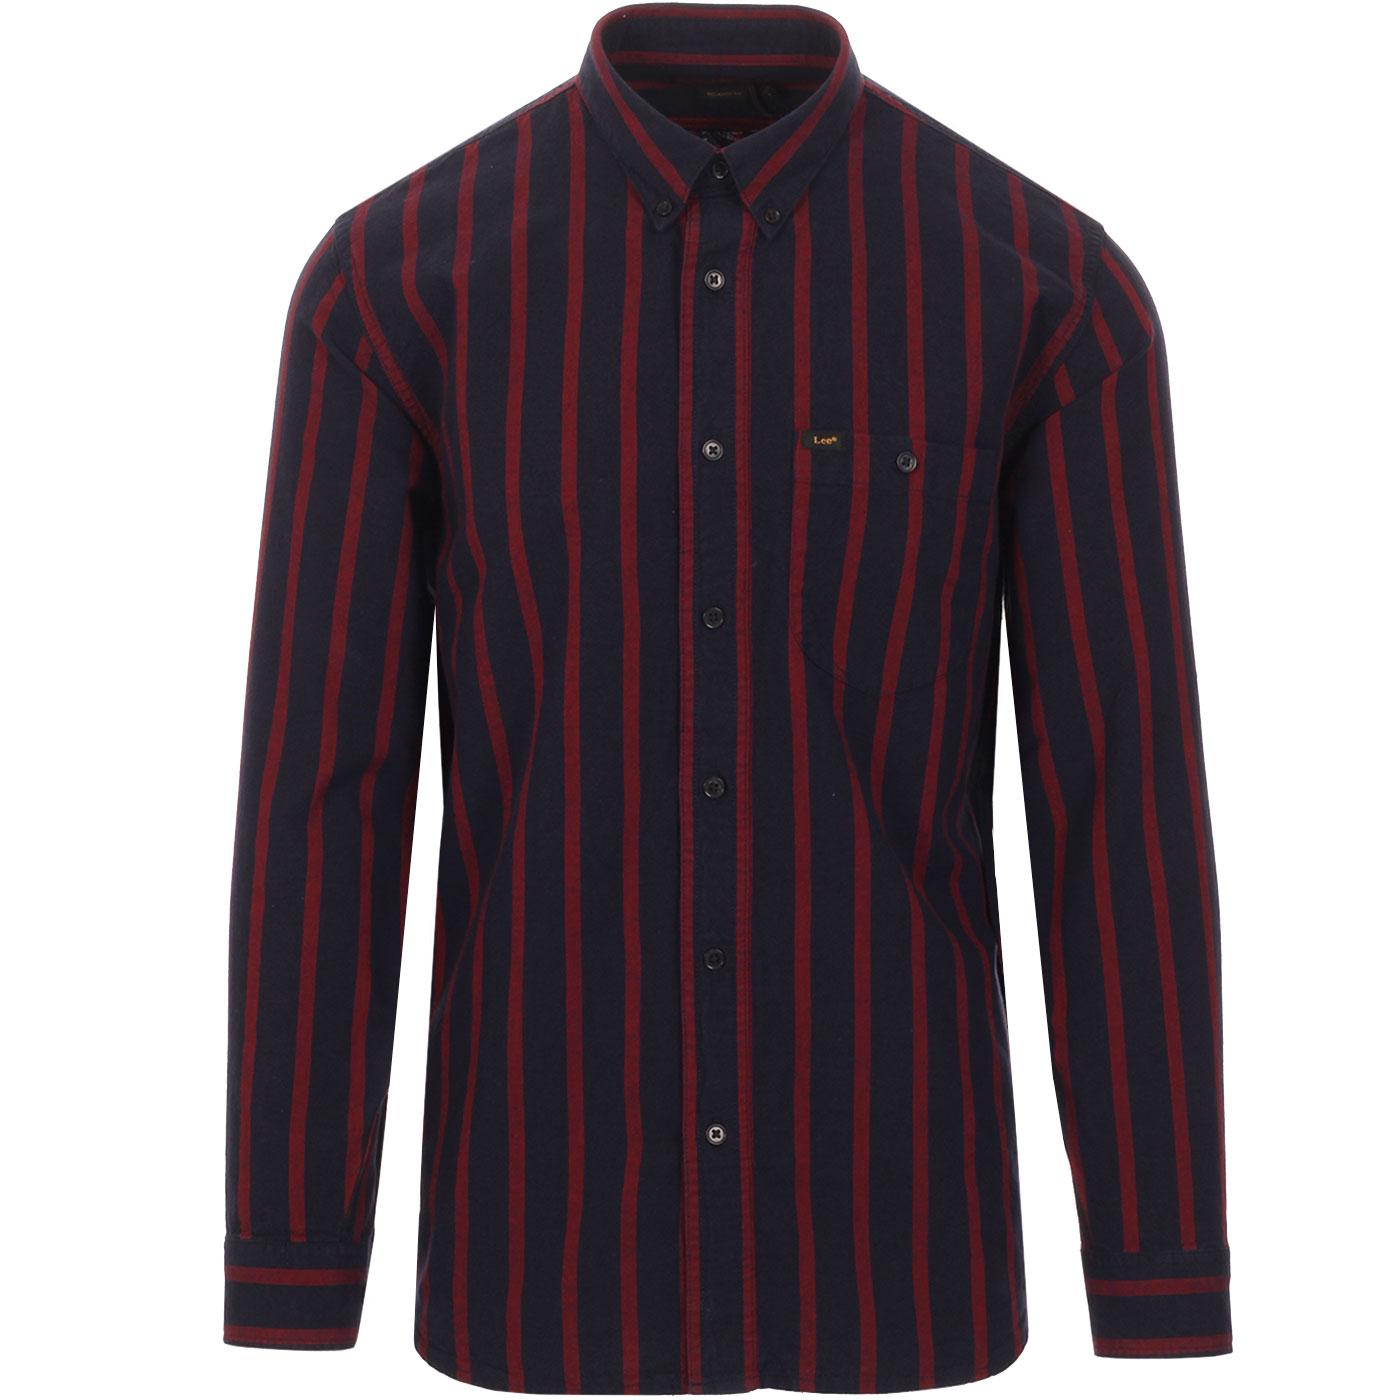 LEE JEANS Men's Relaxed Fit Riveted Stripe Shirt